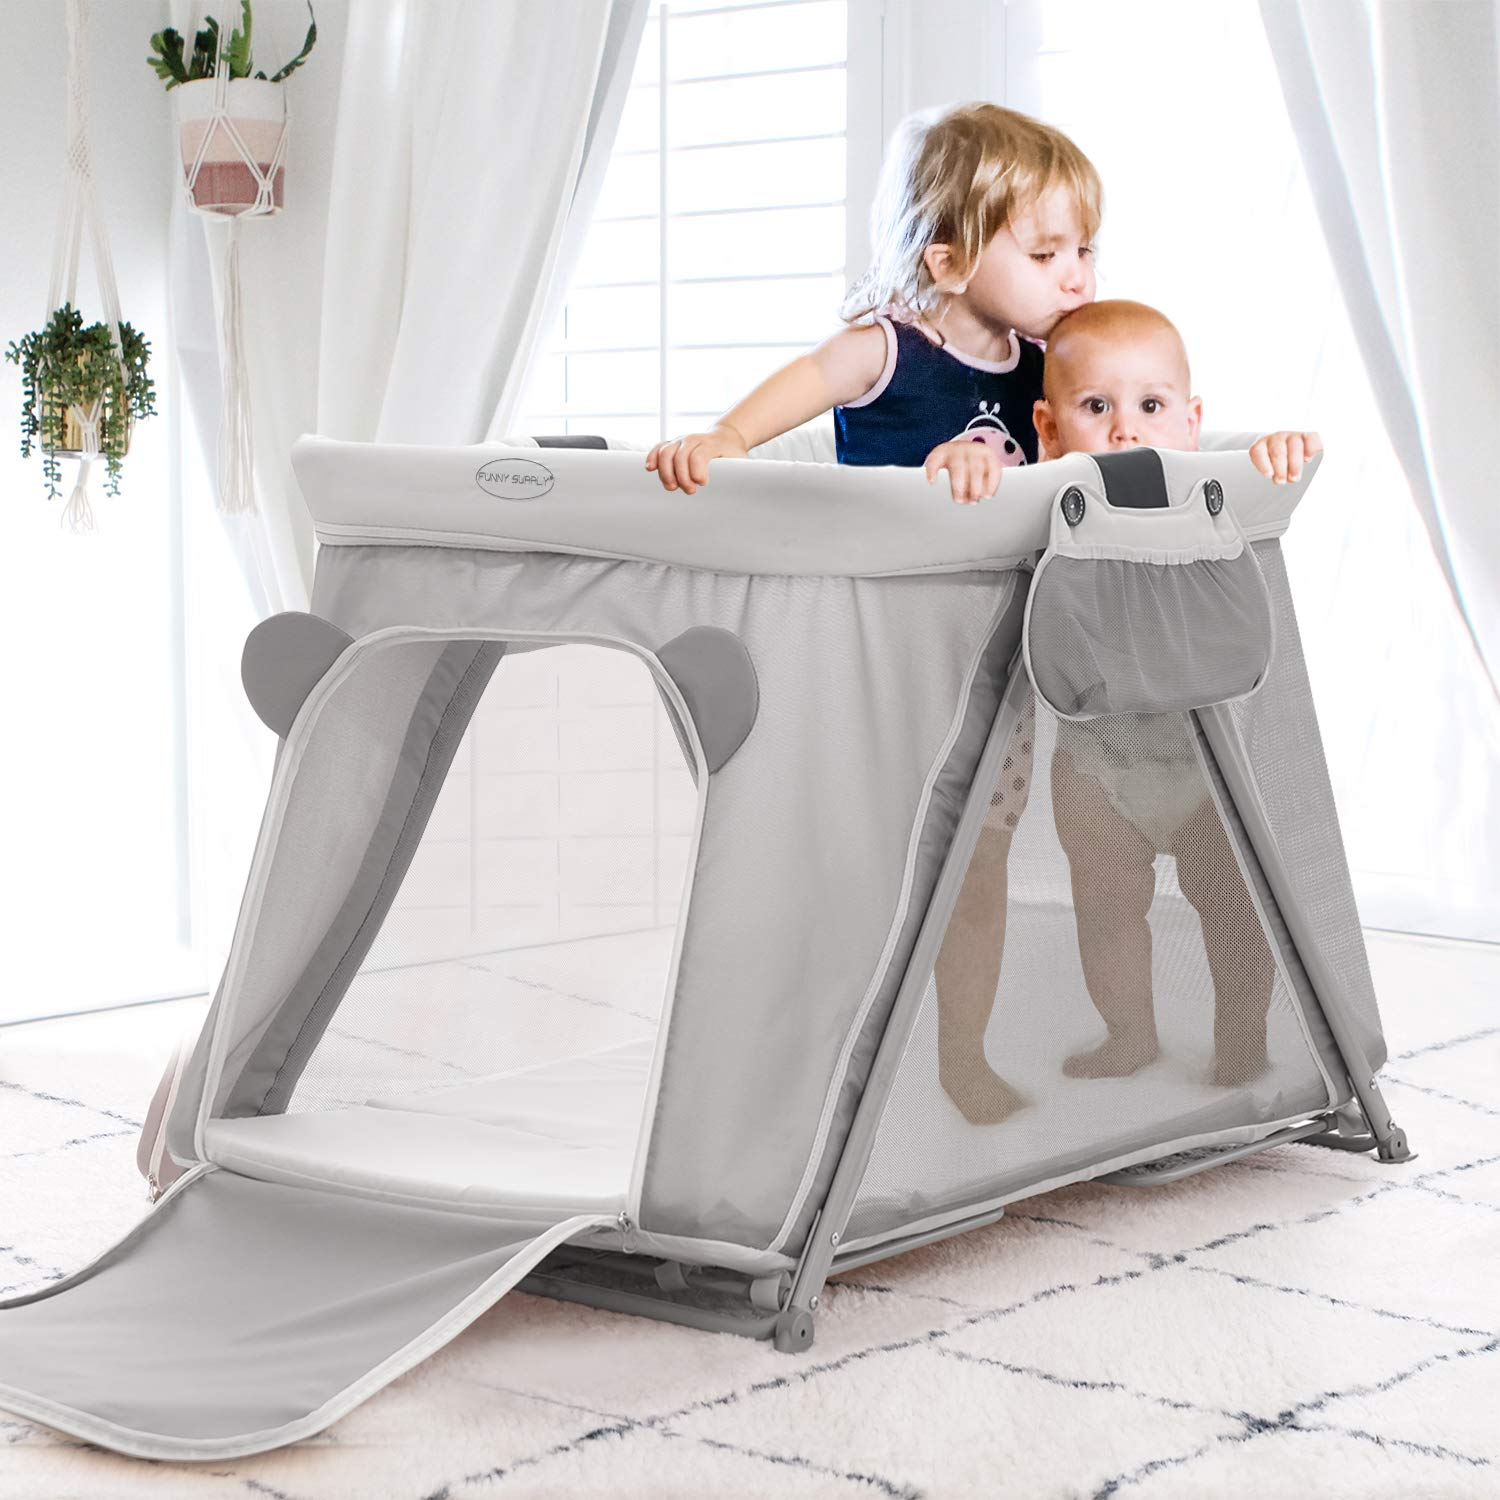 COT BED 100/% COTTON FITTED SHEET MOSES BASKET CRIB TODDLER BABY TRAVEL ALL SIZES